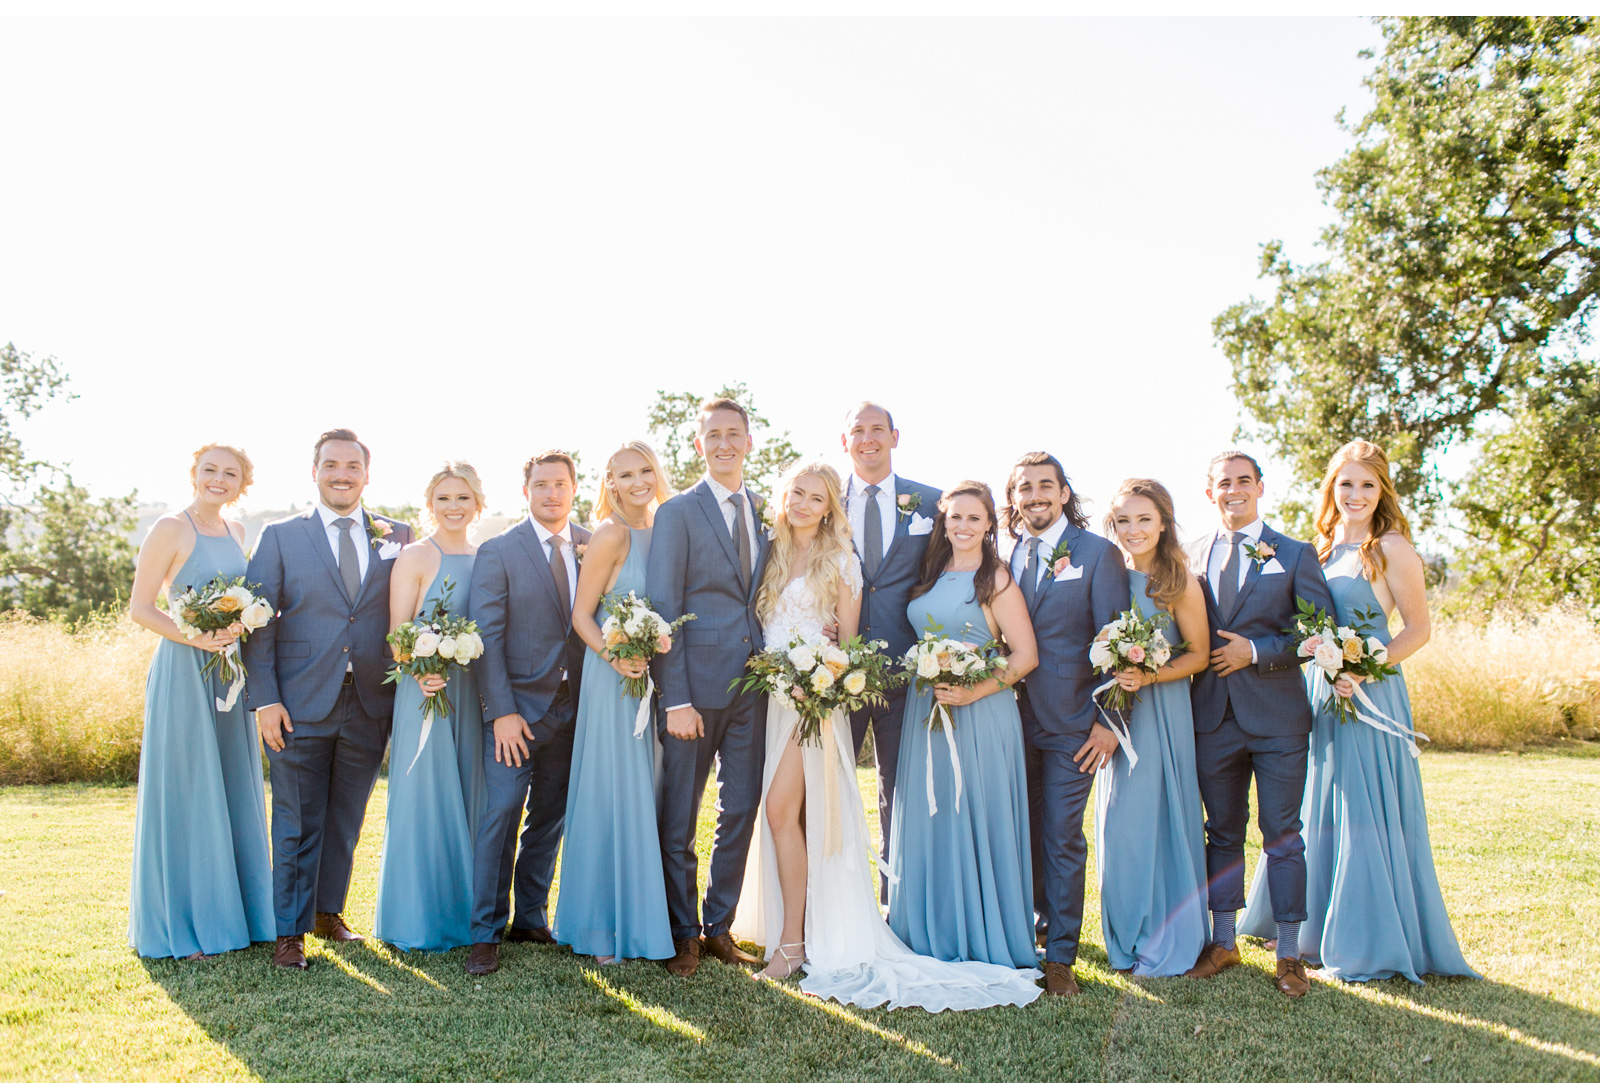 Paso-Robles-Style-Me-Pretty-The-Knot-Wedding-Natalie-Schutt-Photography's-Wedding_09.jpg